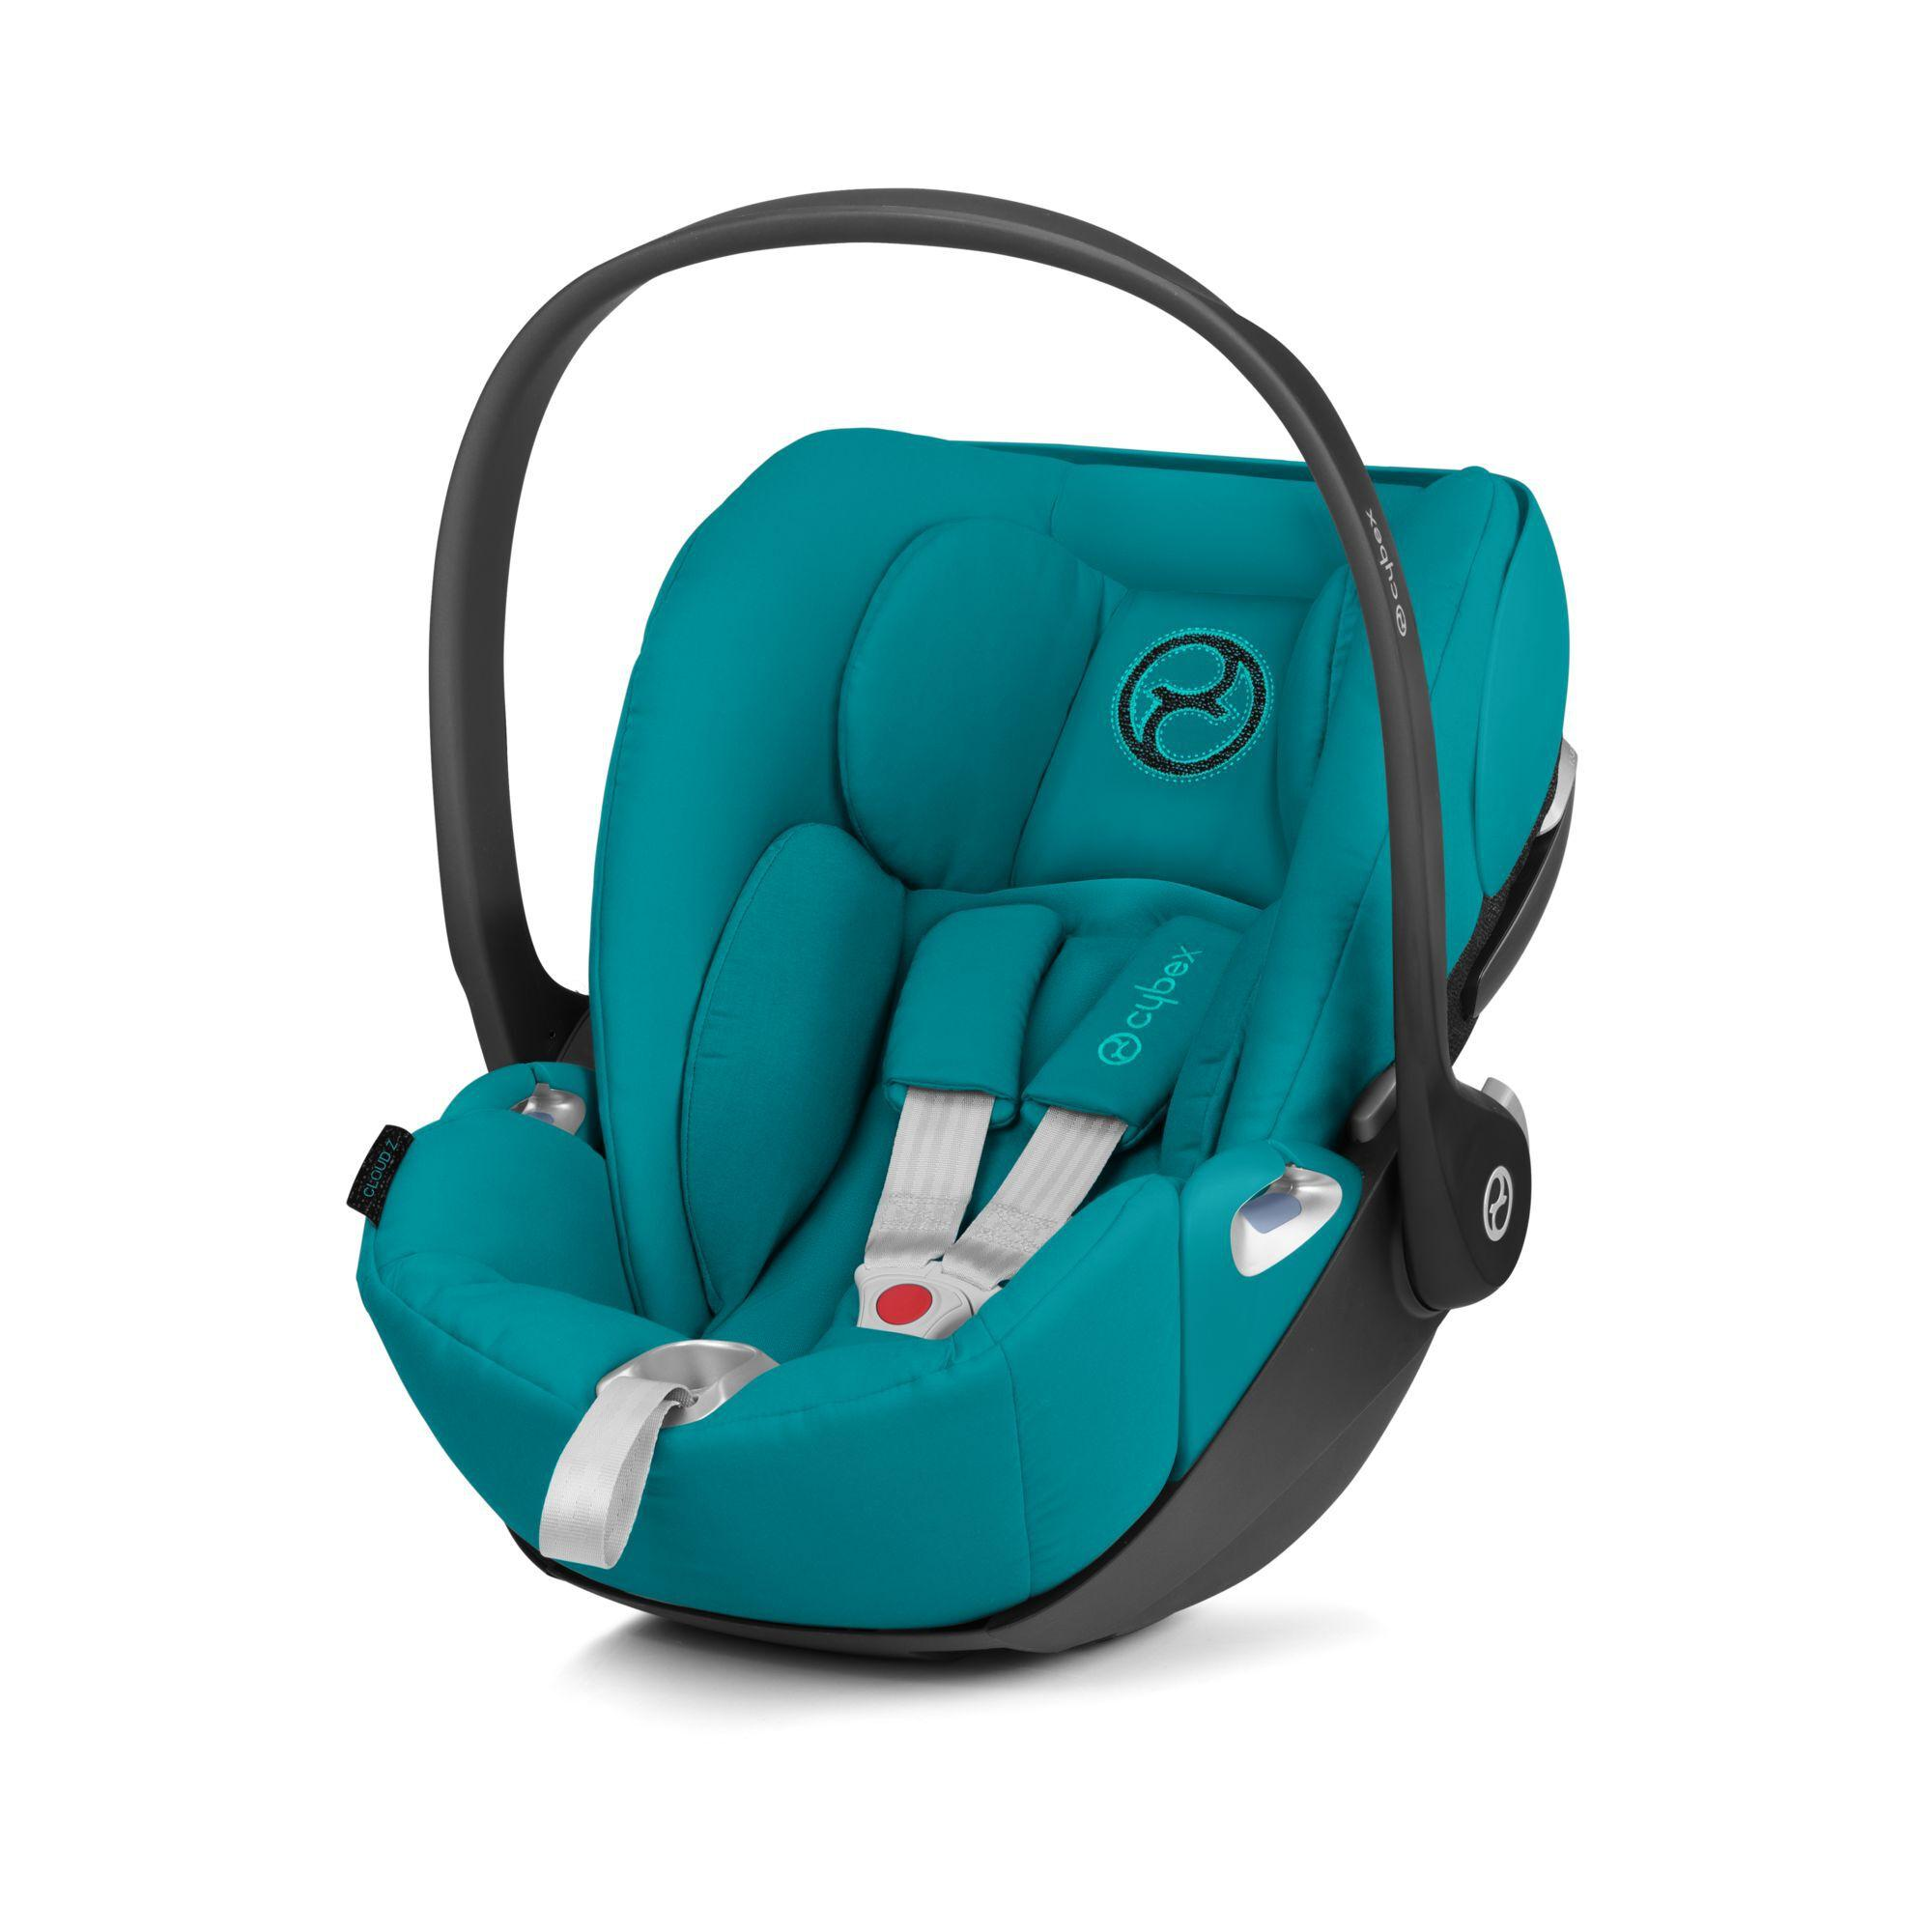 Cybex Cloud Z i-Size 45-87cm, River Blue - Cybex